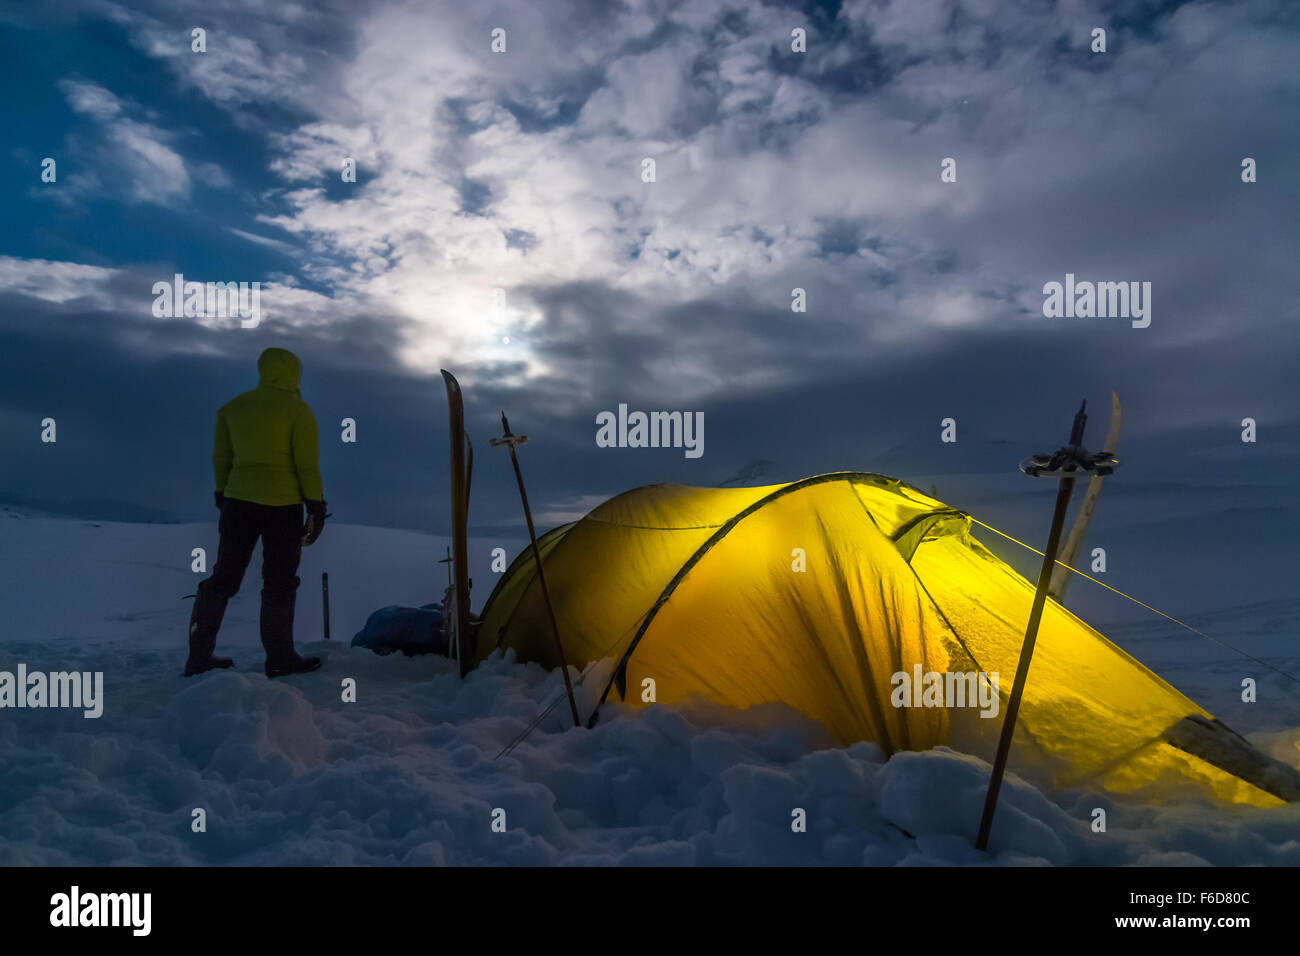 Tenting out in the Northern Wilderness - Stock Image